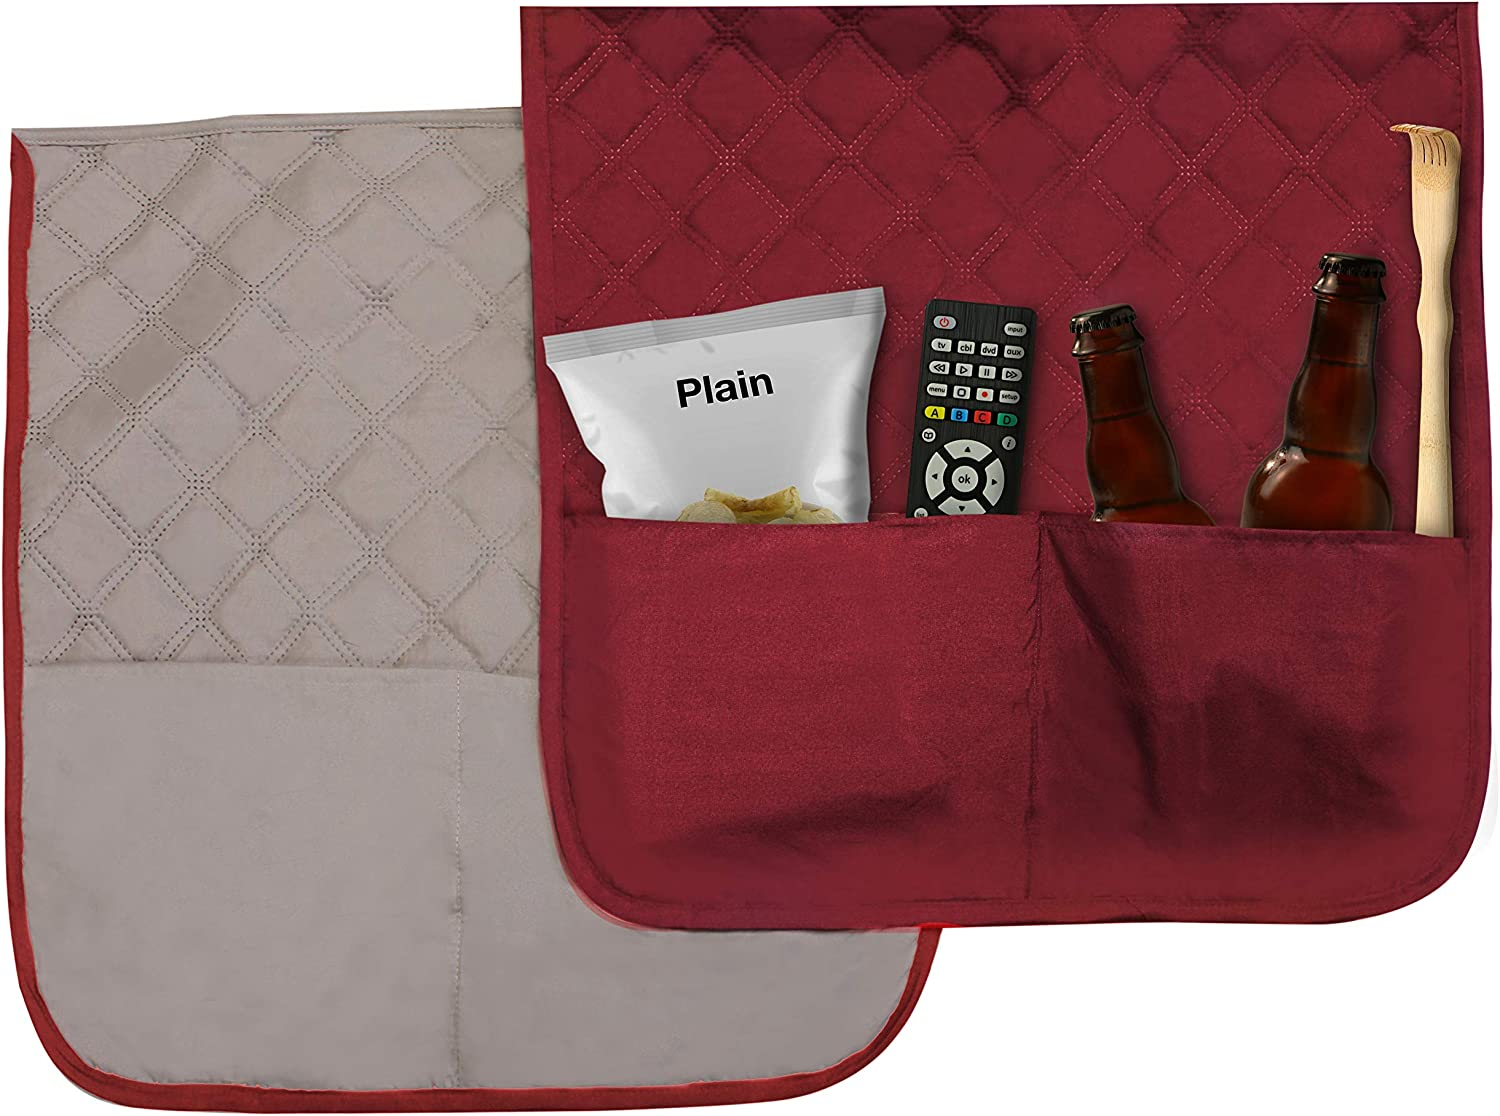 Anti-slip Durable fabric Water Dust-Free protect sofa and couch Furniture Cover Stain-Free Snack CHAIR - 1 Claw-Proof 2 Pockets for Remote Seat protection Slipcover COMFII HOME Luxury Reversible Quilted Chair Cover 1 Seater Elastic strap